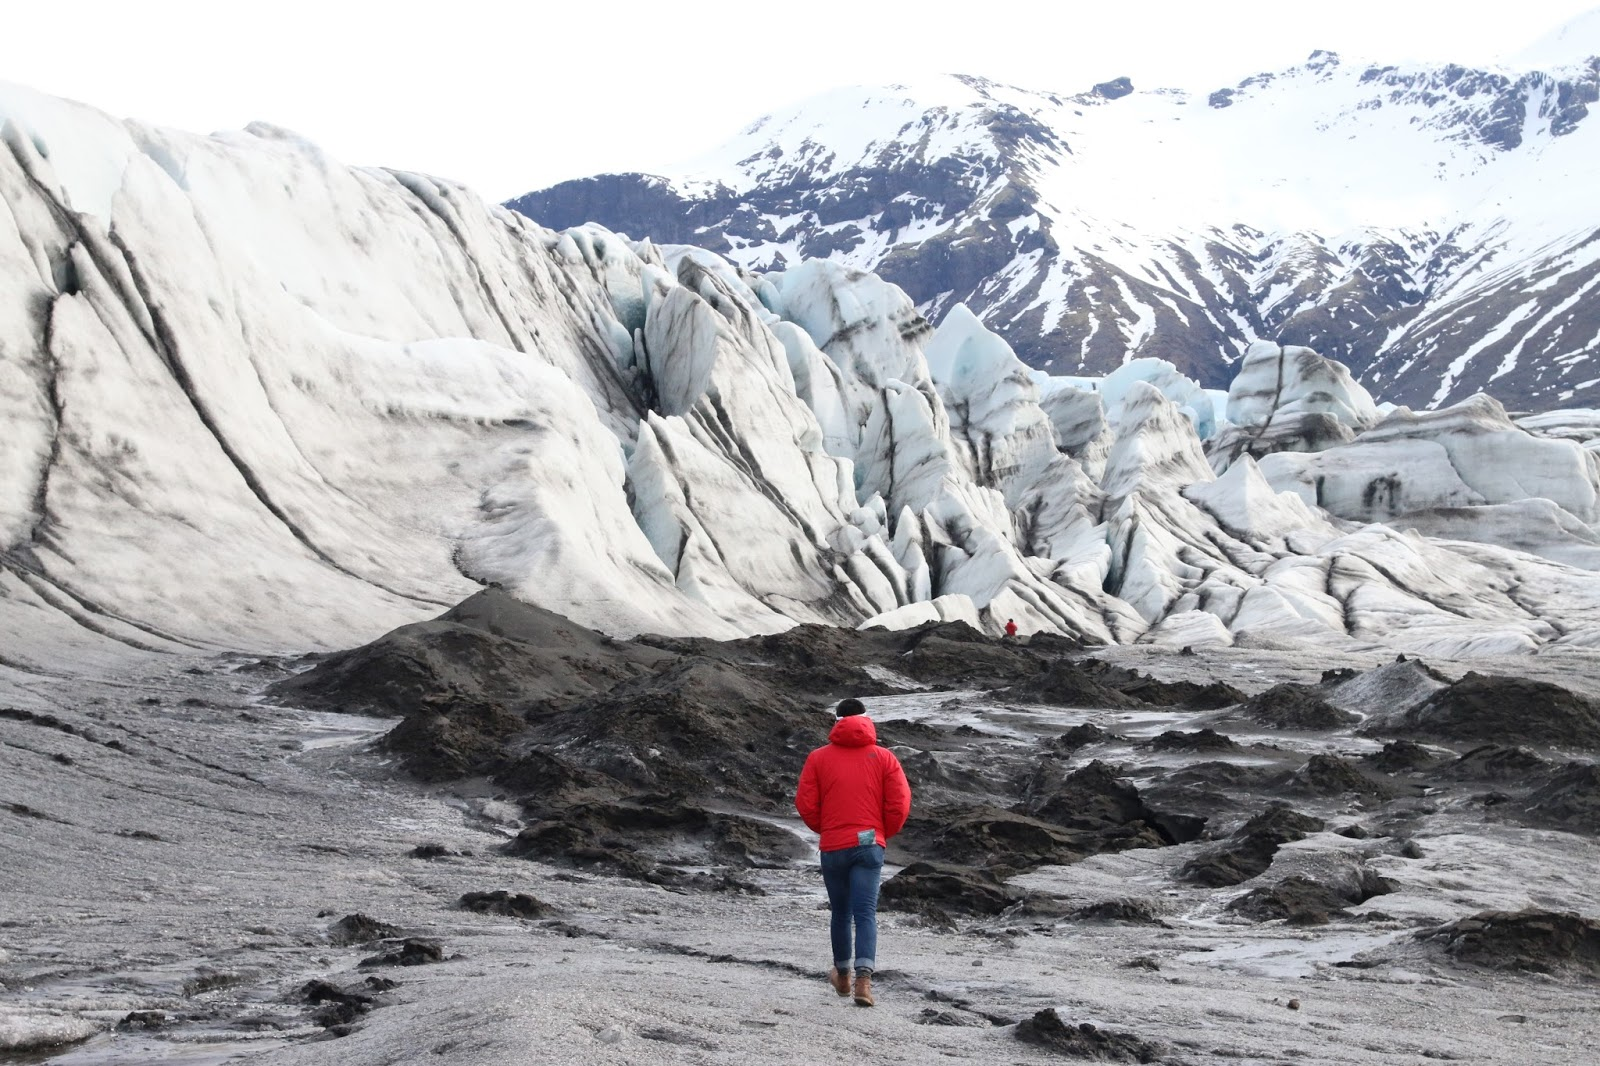 boss fight free high quality stock images photos photography man woman glaciers